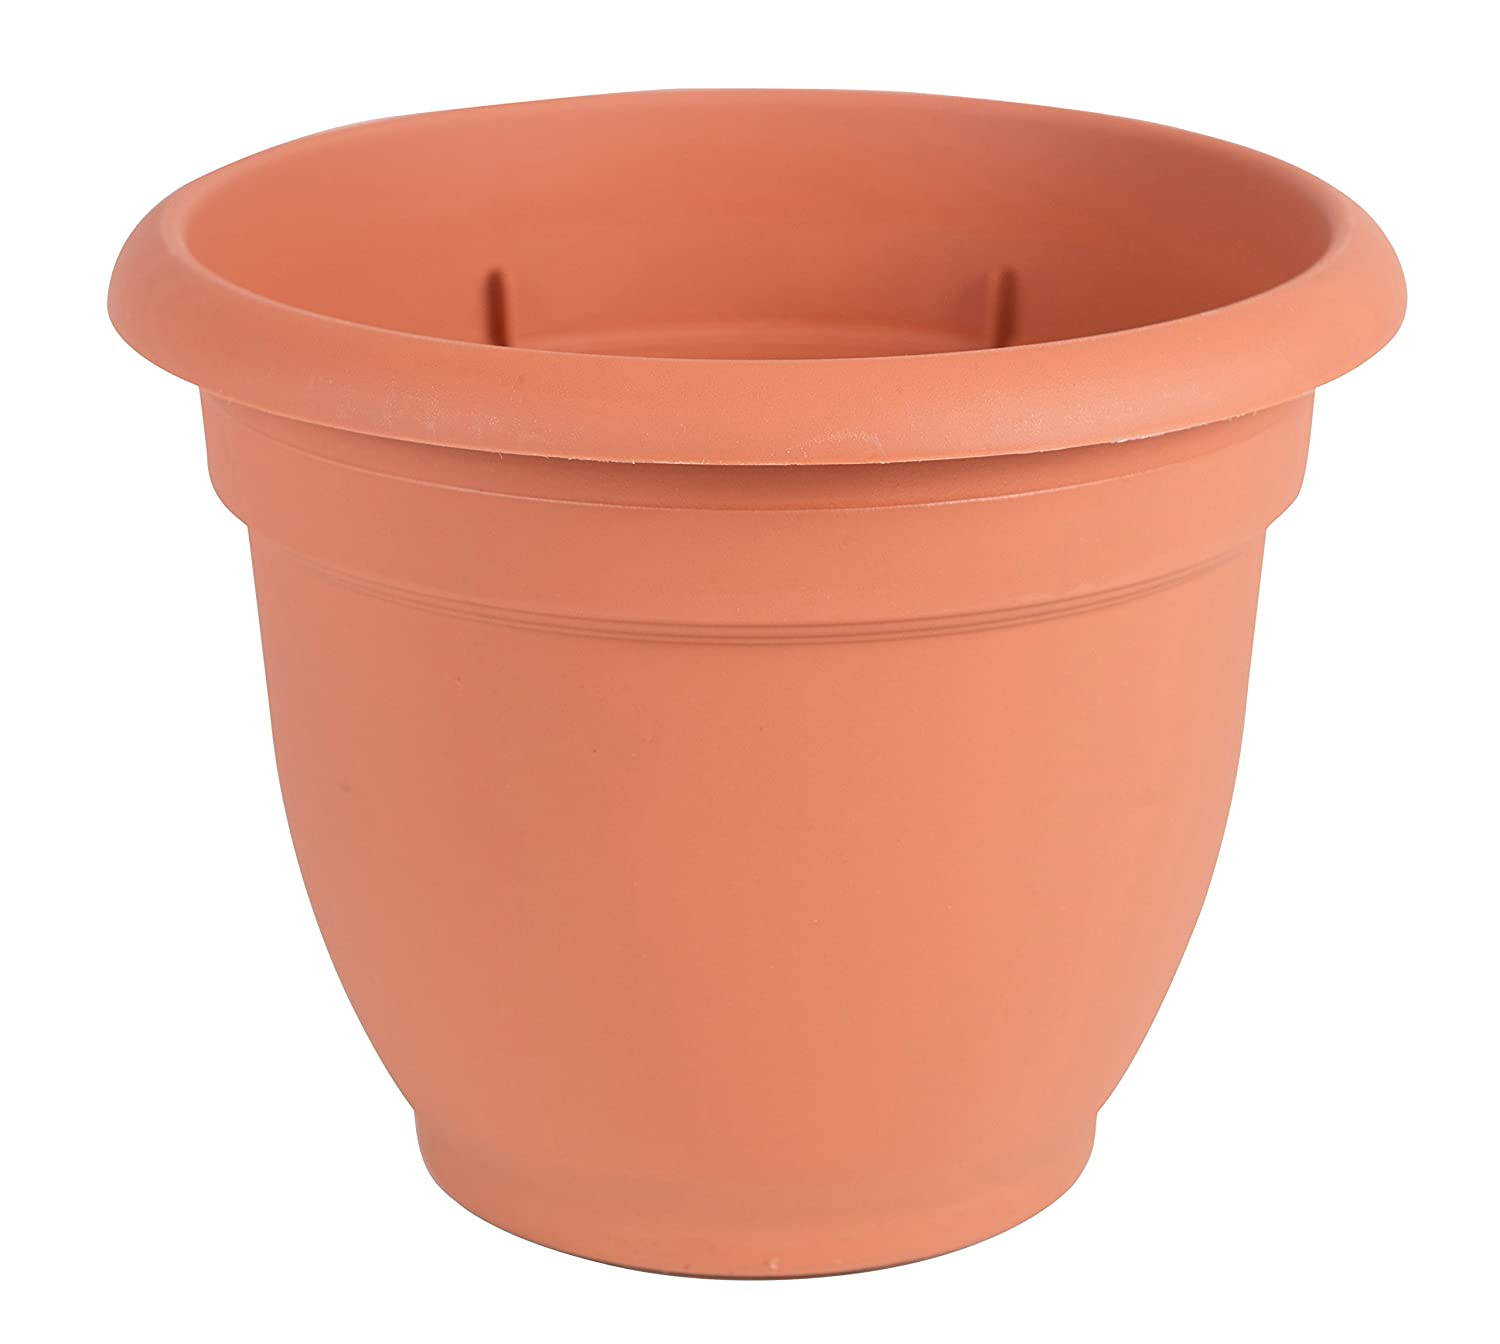 Bloem 20-56110 Fiskars 10 Inch Ariana Planter with Self-Watering Grid, Color Clay